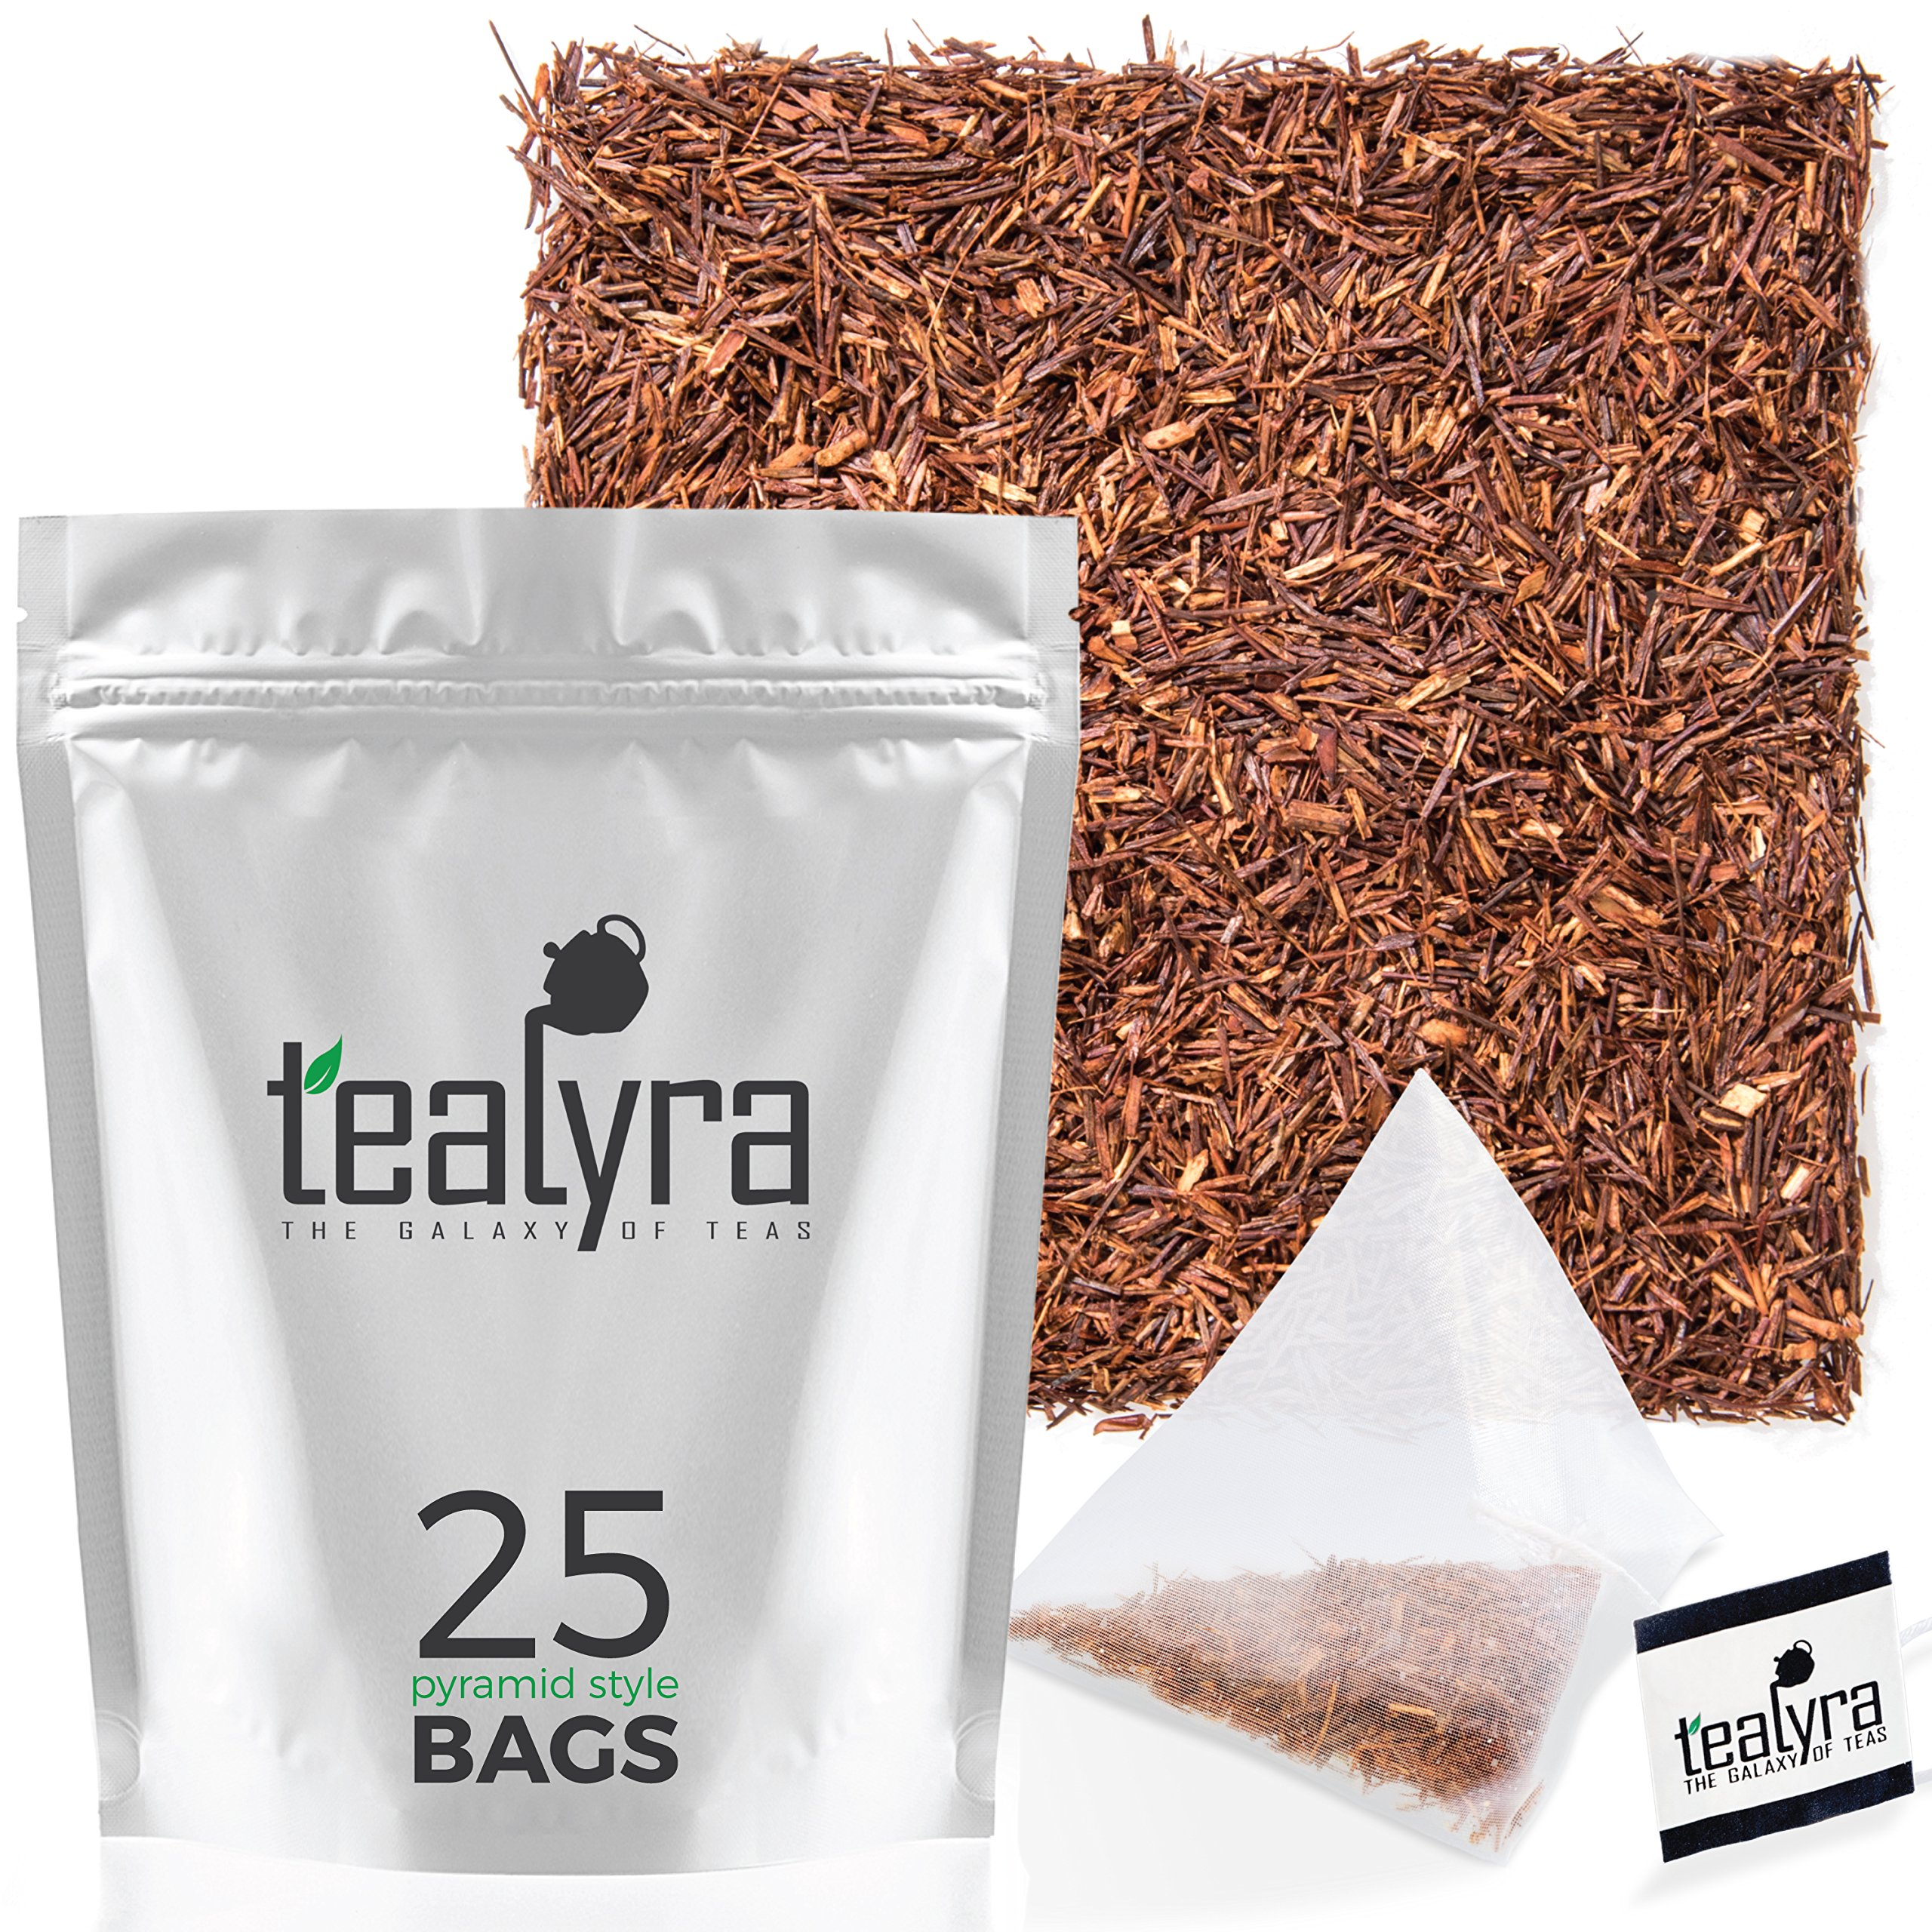 Tealyra - Pure Rooibos - 25 Bags - African Red Bush Herbal Loose Leaf Tea - Antioxidants Rich - Relax - Low Blood Pressure - Kids Welcome - Caffeine-Free - Pyramids Style Sachets